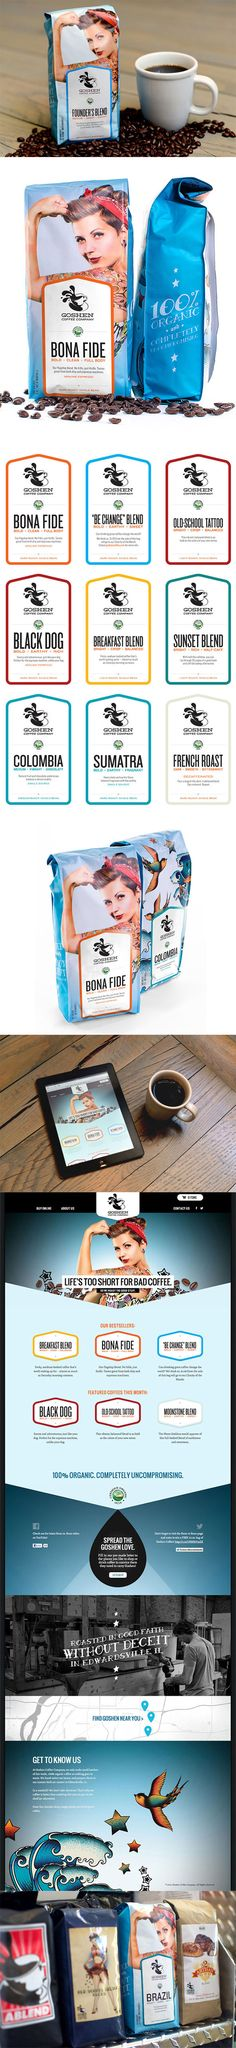 Goshen Coffee packaging and branding by @Identity Designed